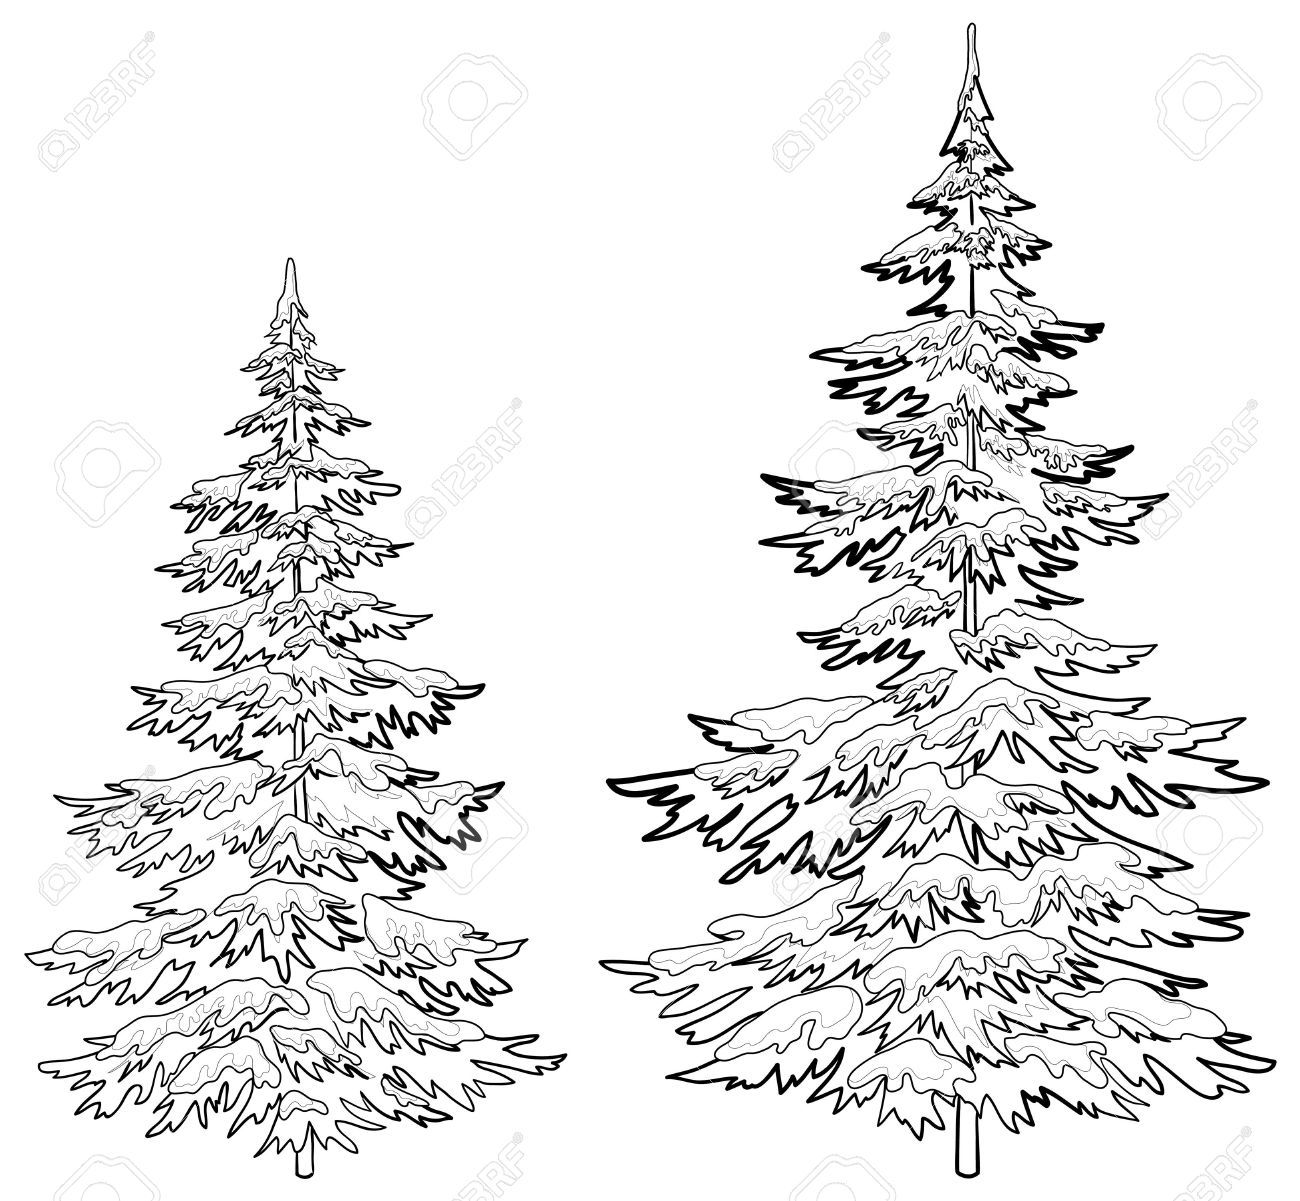 Vector Christmas Trees Under Snow On A White Background Contours Tree Drawings Pencil Christmas Tree Drawing Tree Drawing